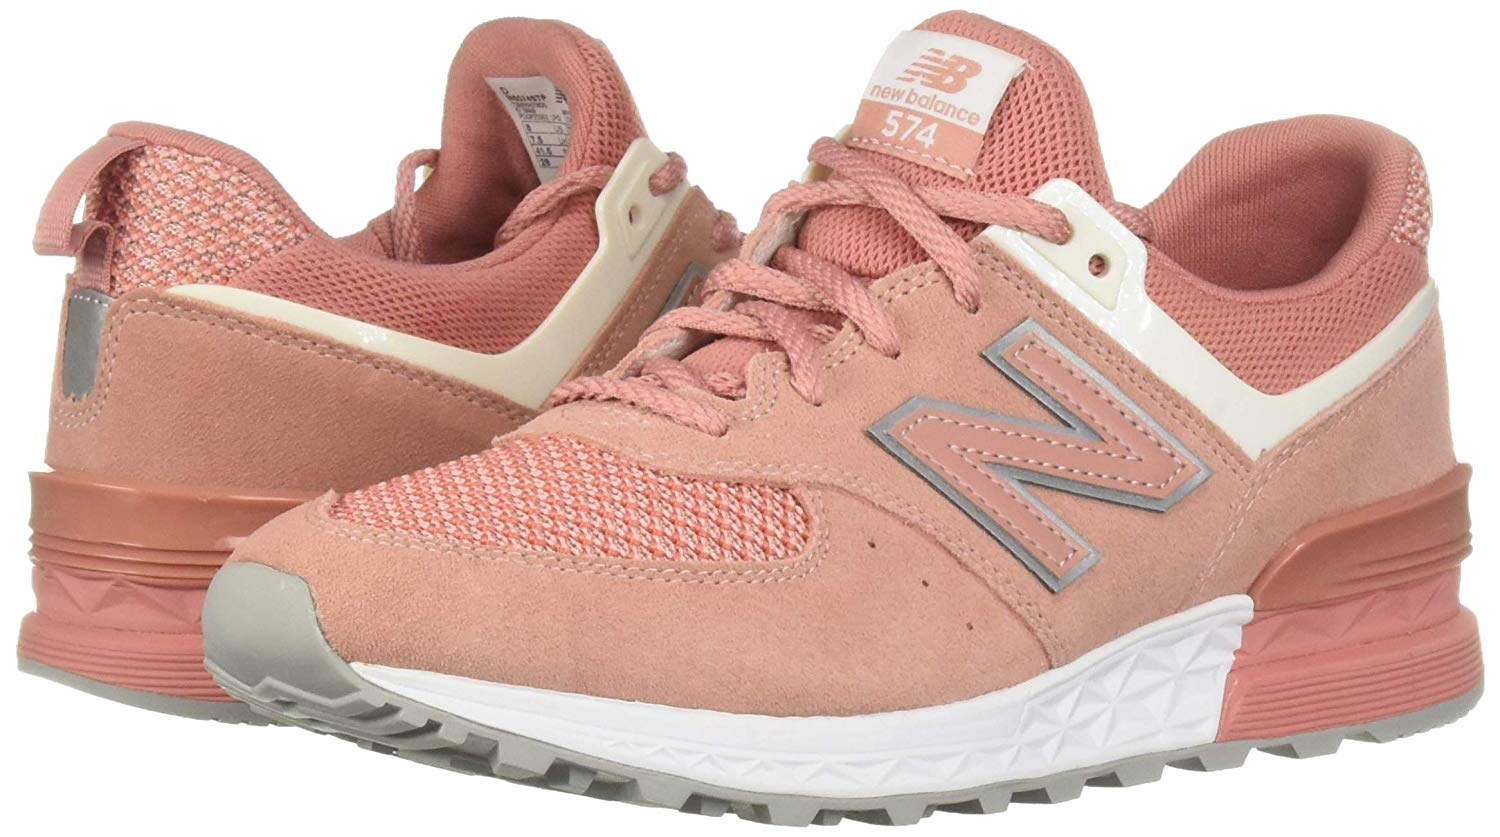 Para Hombre 574 Sport New Balance Tenis, Dusted Pea, tamaño